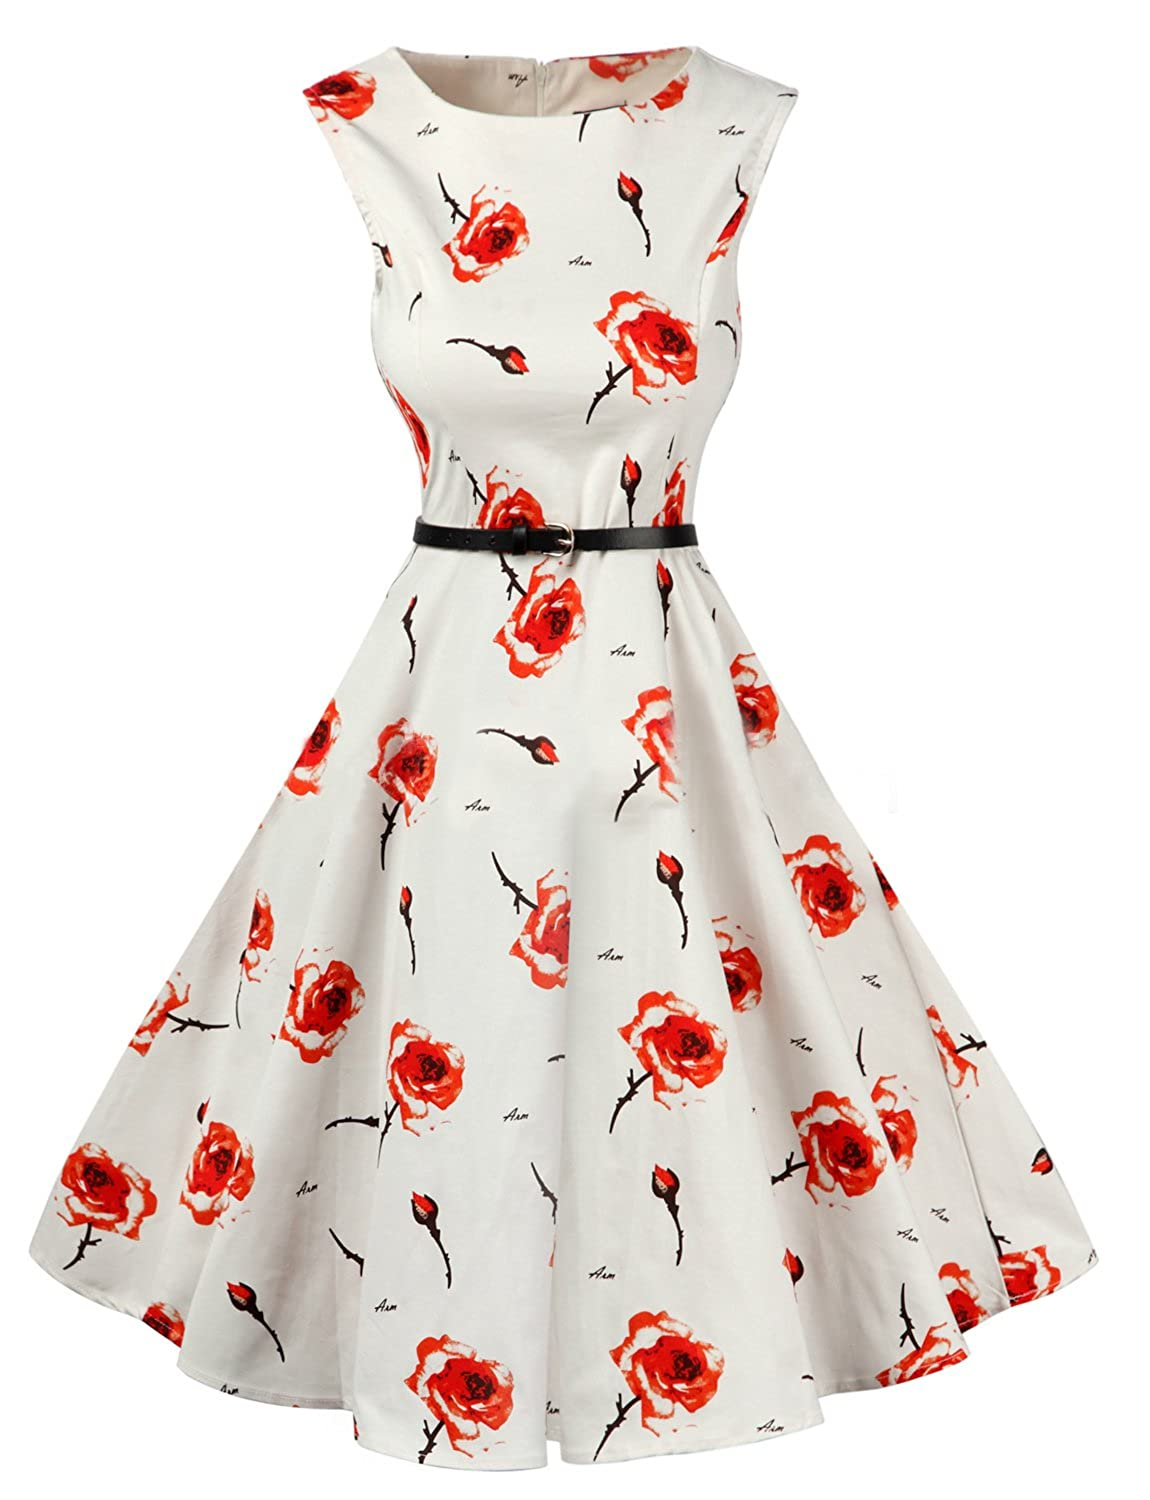 Hdb LINKFLY 1950's Elegant Dress Vintage Party Tea Dress Belt Printed Dresses for Women